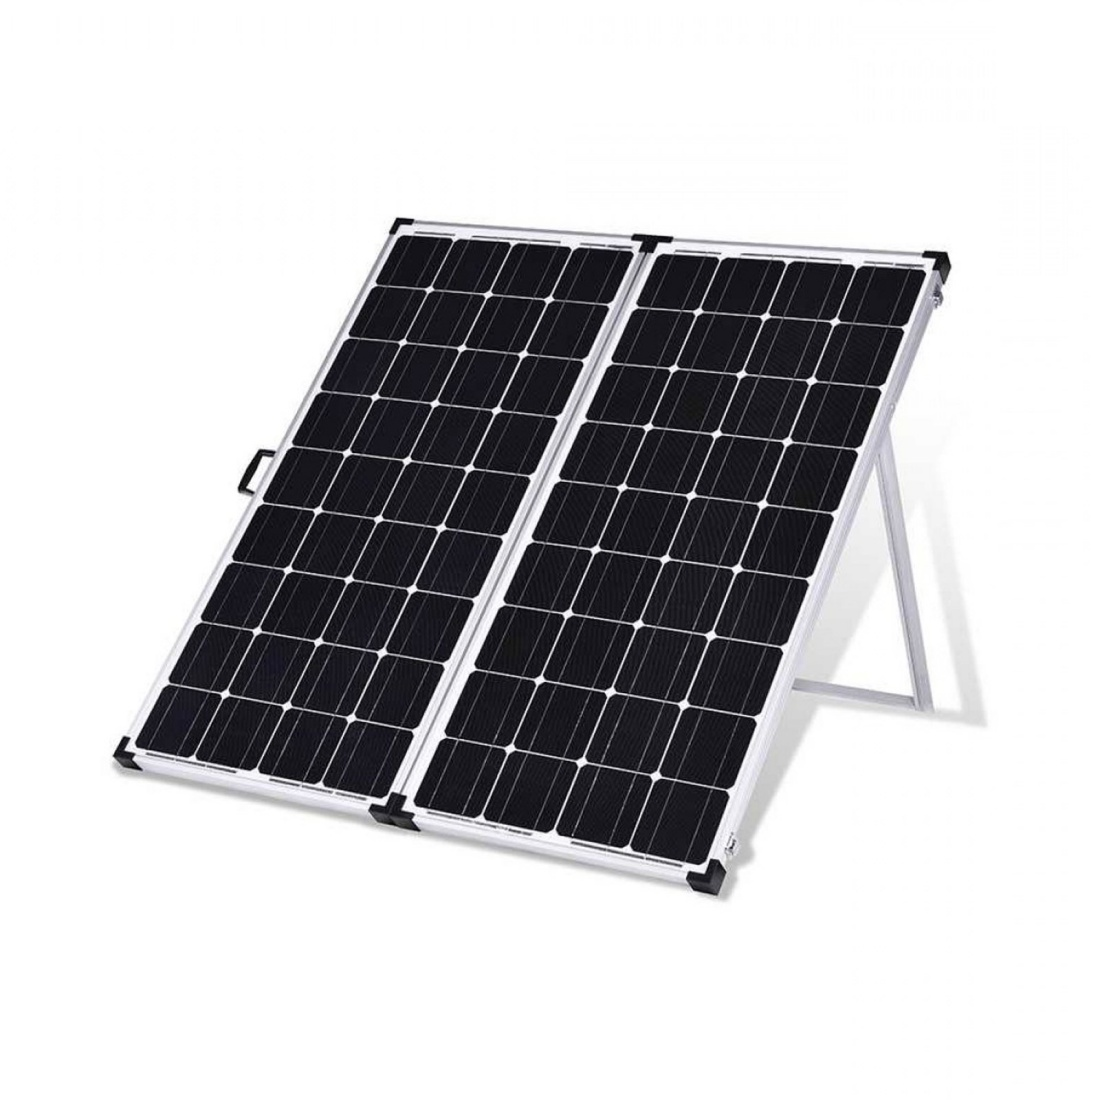 MaxRay 280 Watts Monocrystalline Portable Folding Solar Panel